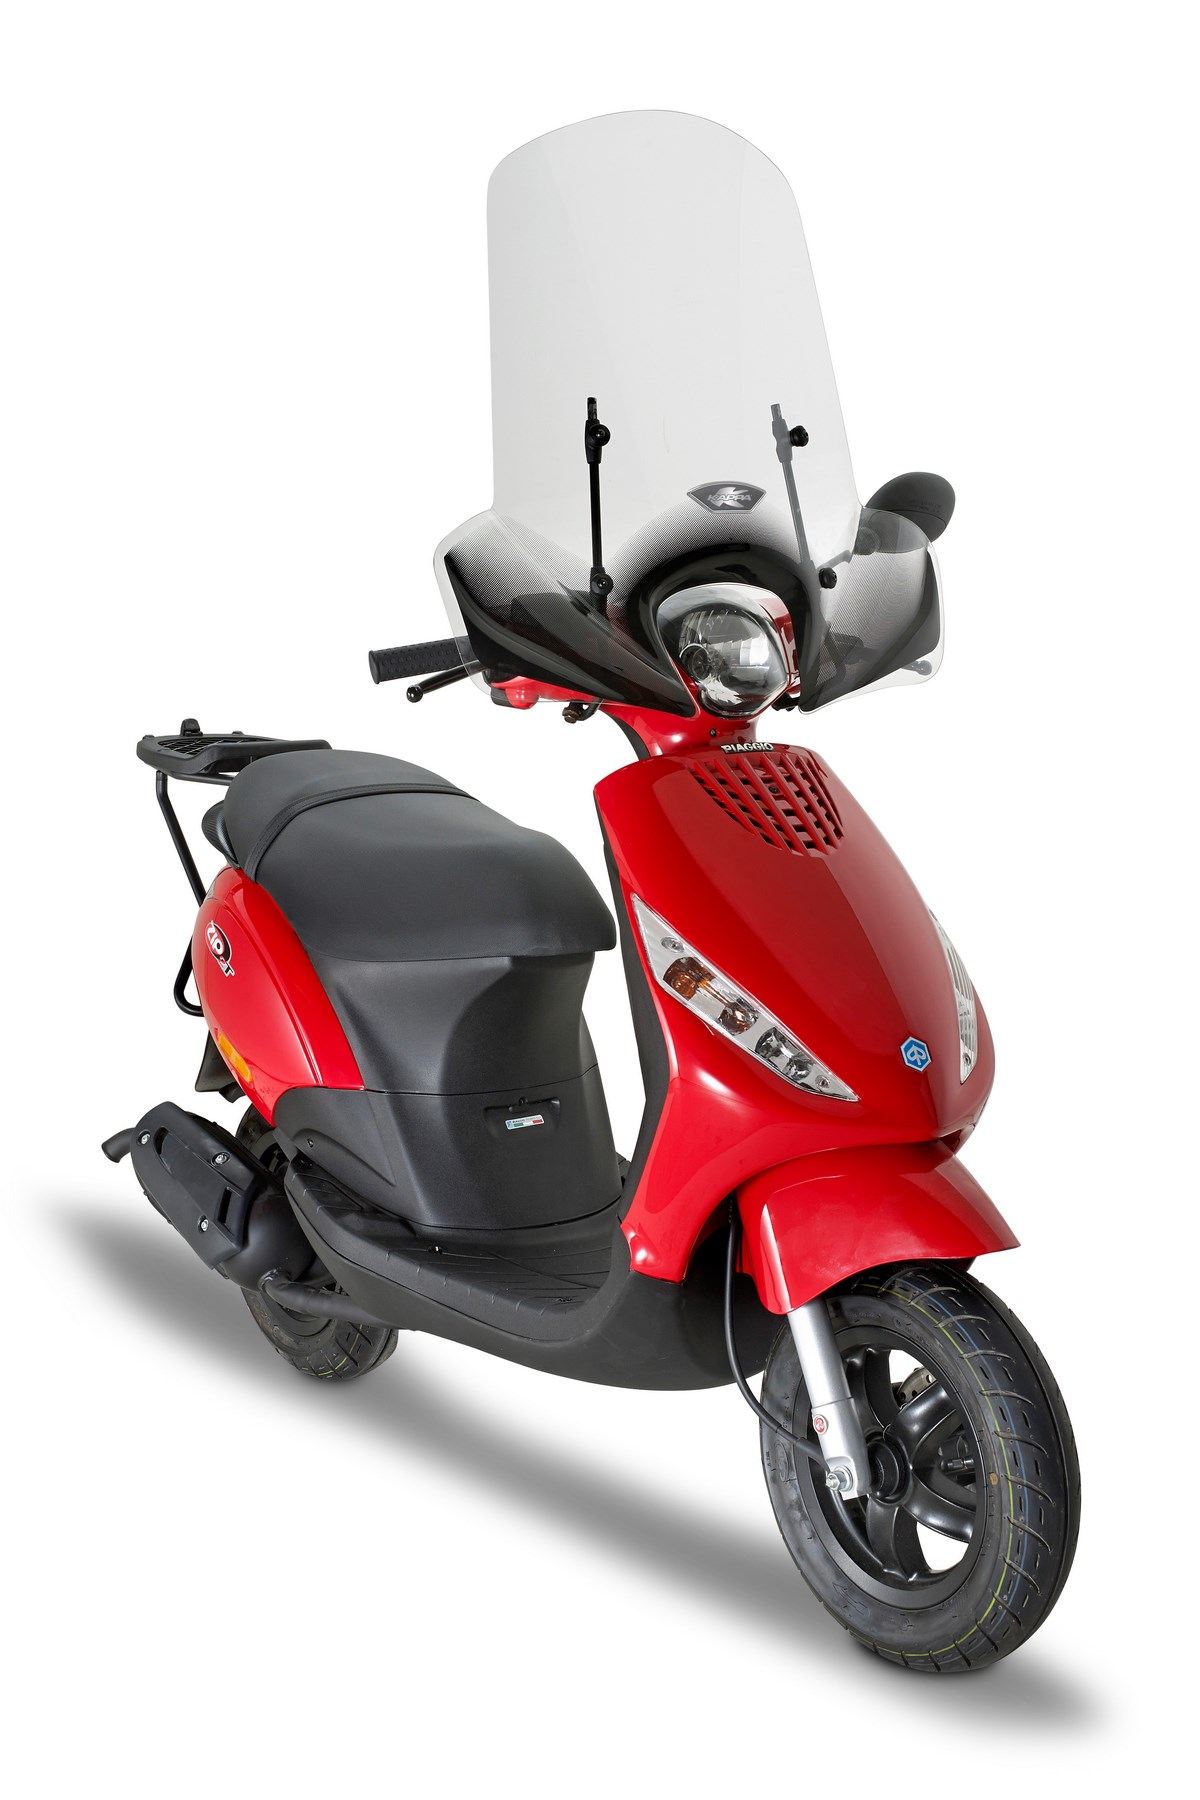 piaggio zip 50 2t workshop manual